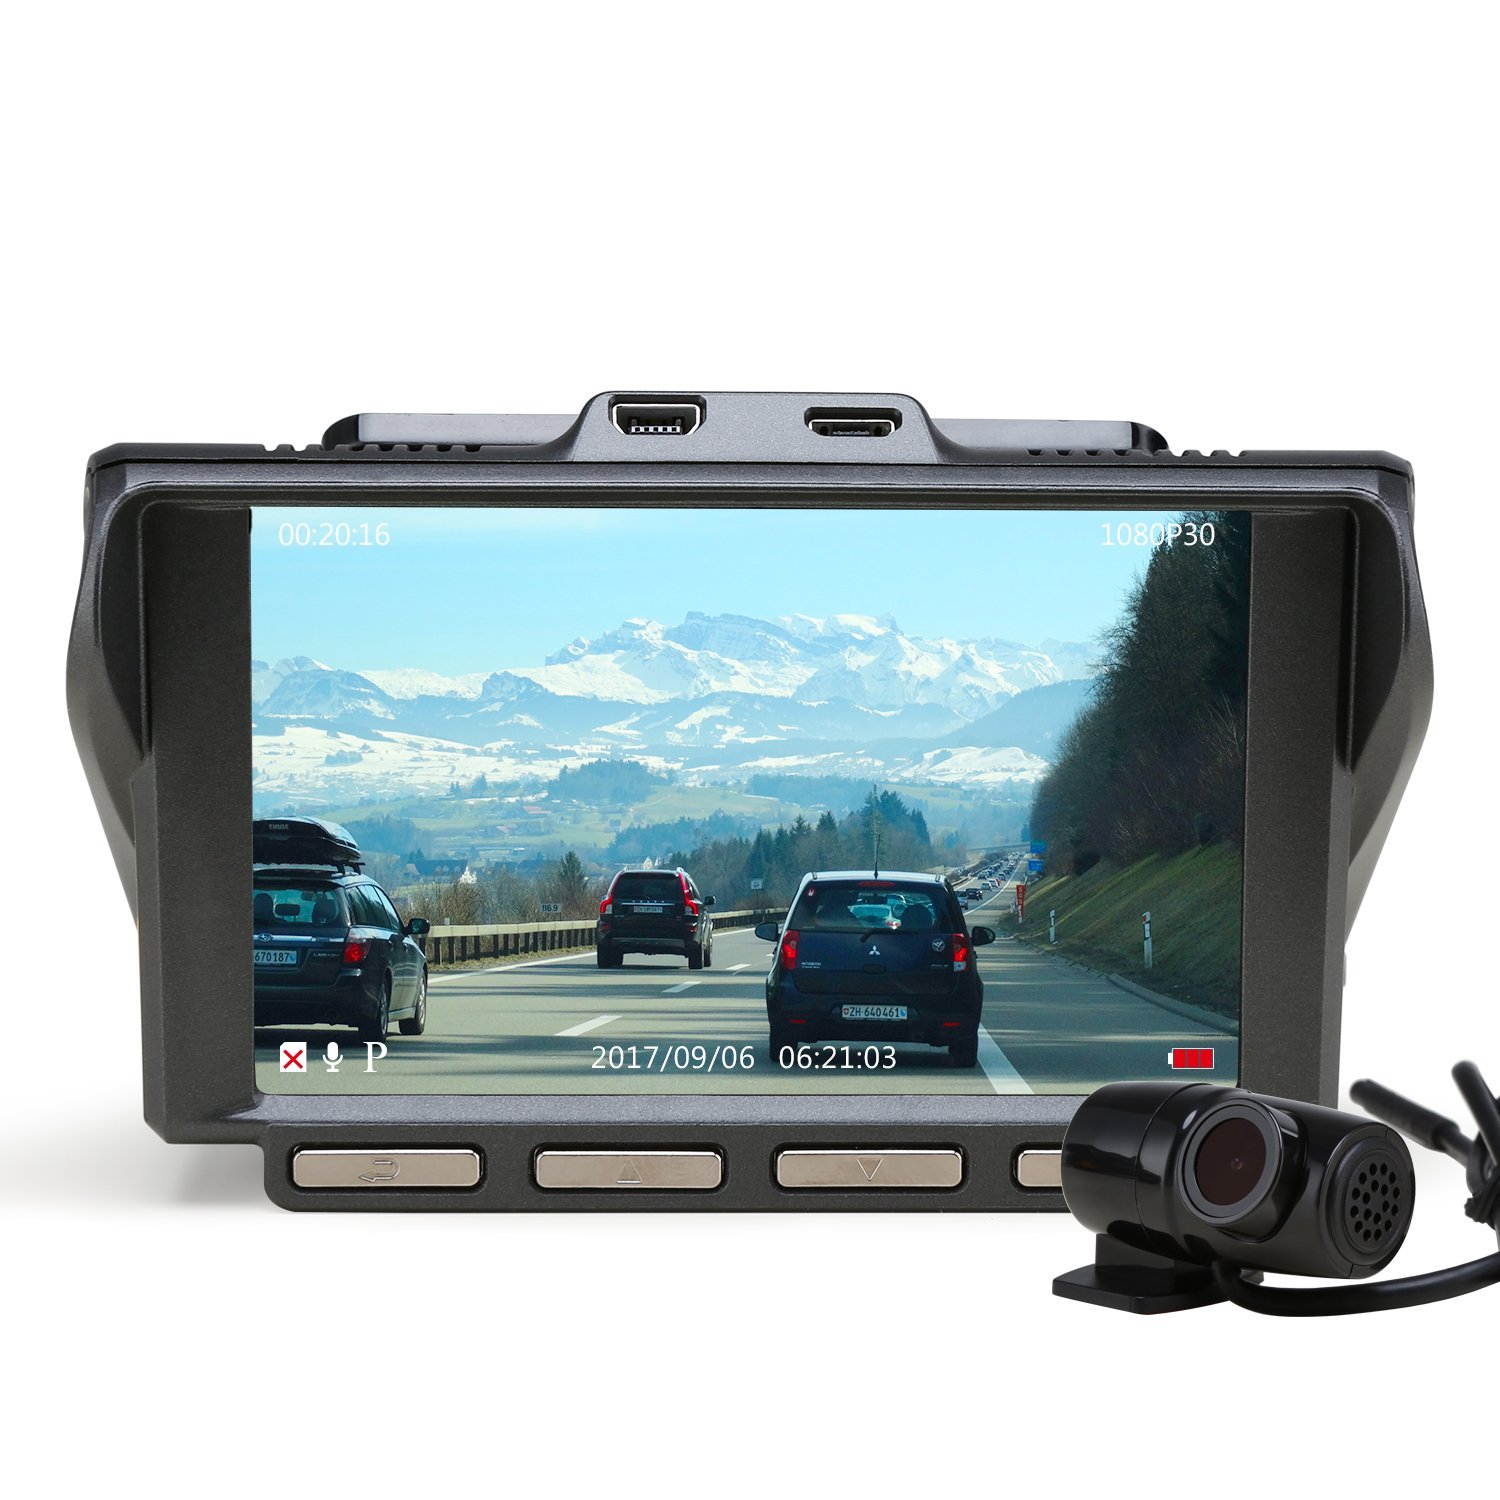 Z-EDGE S4 Dual Dash Cam, 4.0 Inch IPS Ultra HD 1440P Front & 1080P Rear 150° Wide Angle Lens Dashboard Camera Recorder, 360° Rotated Rear View Camera with Night Mode, WDR and 32GB Card Included by Z-EDGE